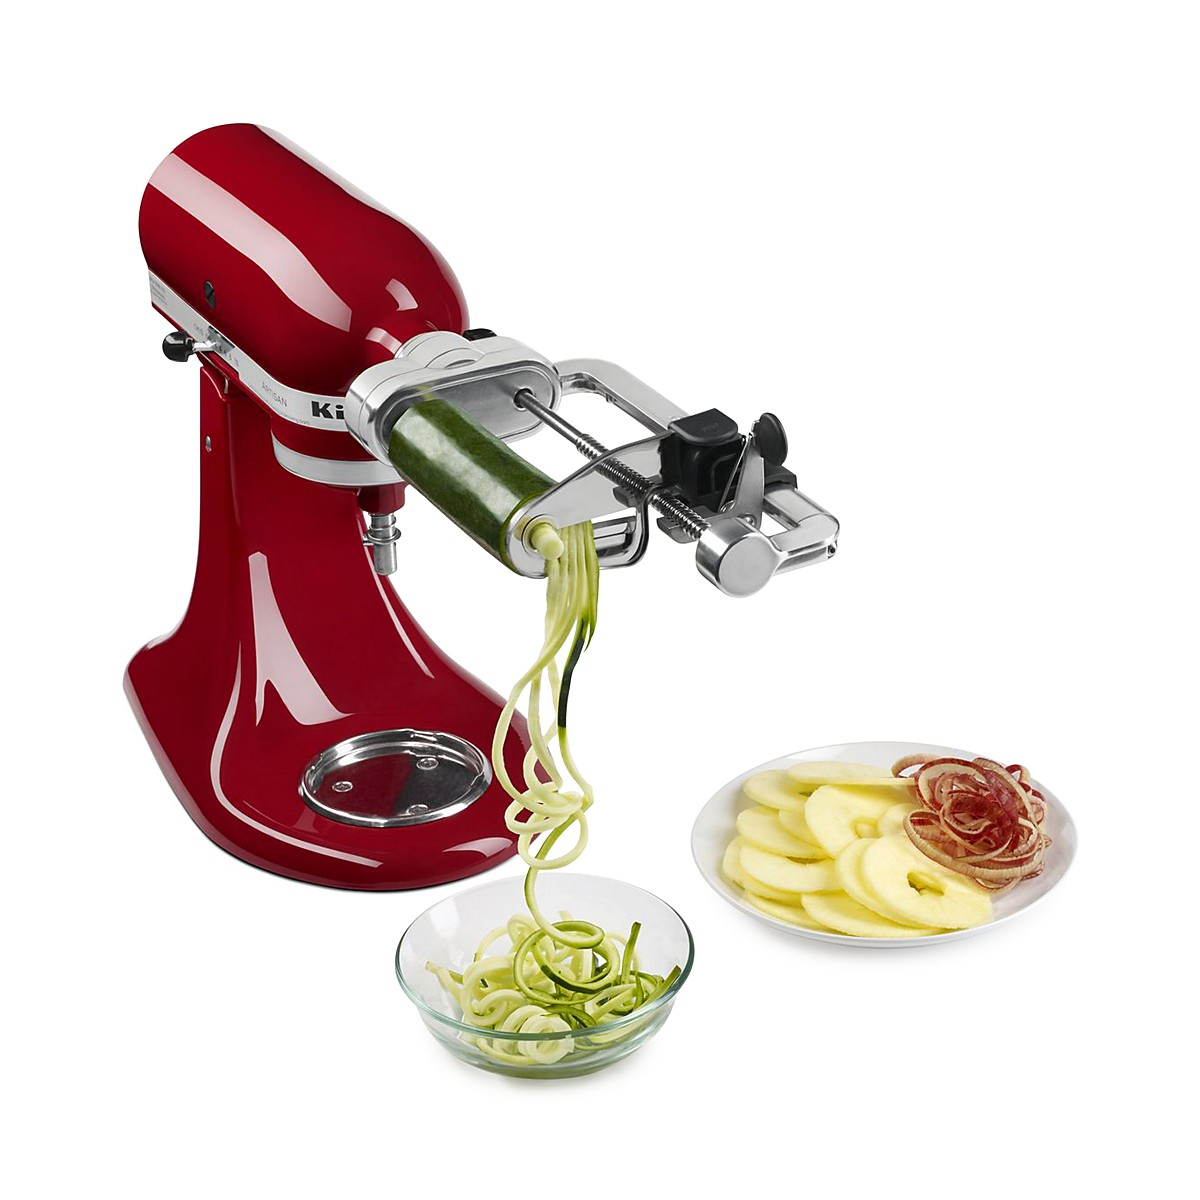 KitchenAid 5-Blade Spiralizer with Peel, Core and Slice Attachment ...